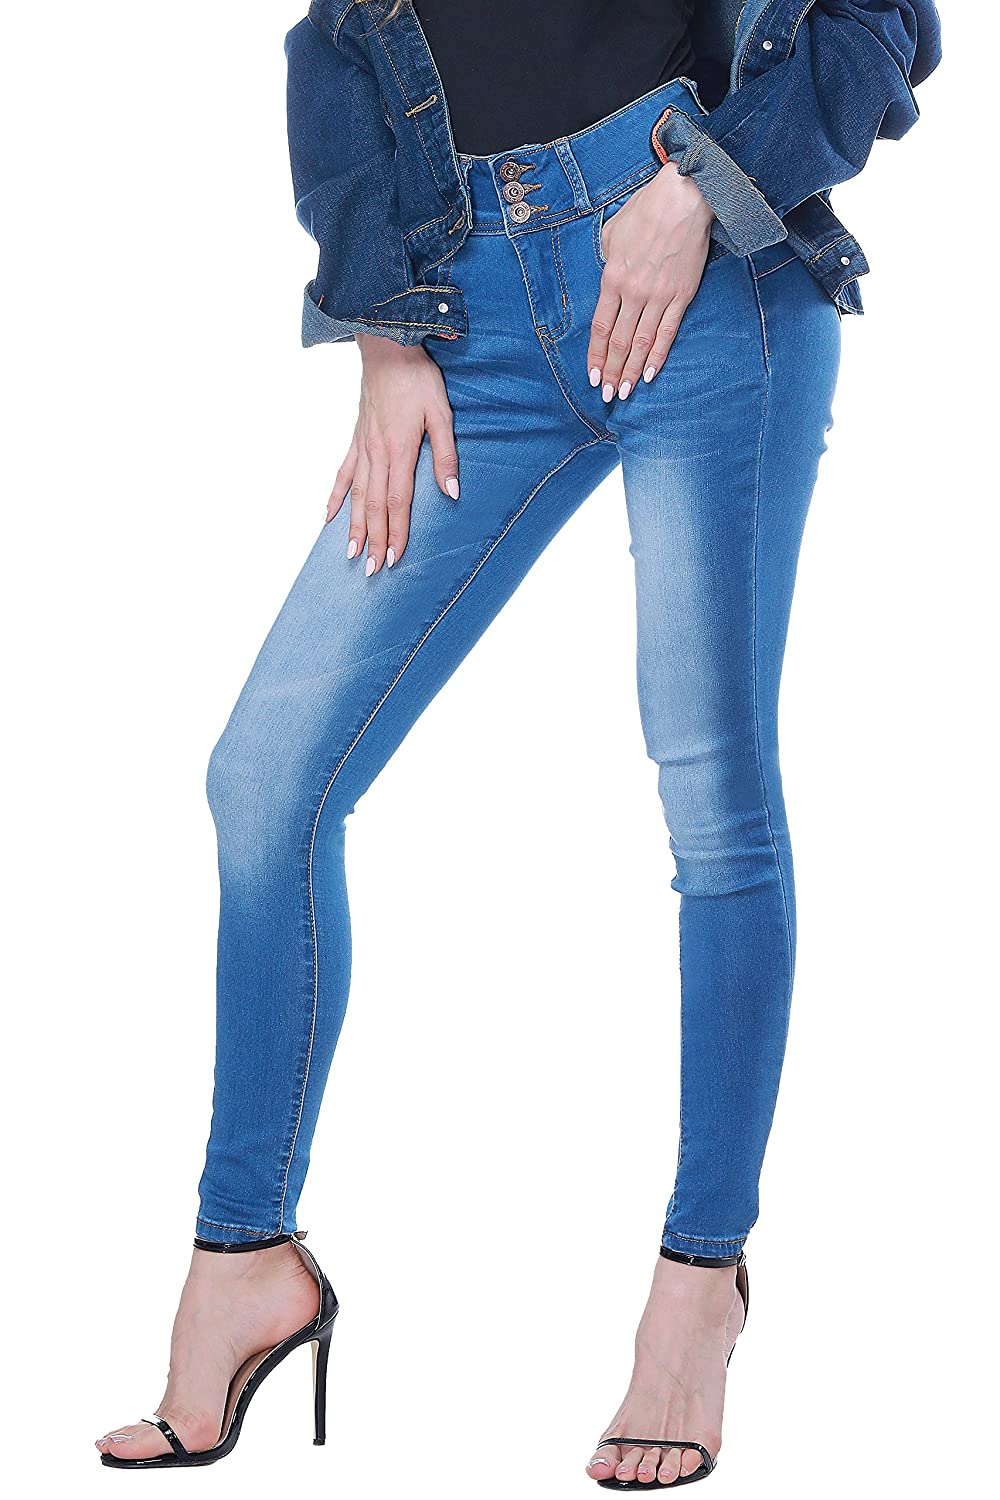 8493341ecc3 FLATTERING STYLE  Mid waisted skinny stretch jeans sit below your waist